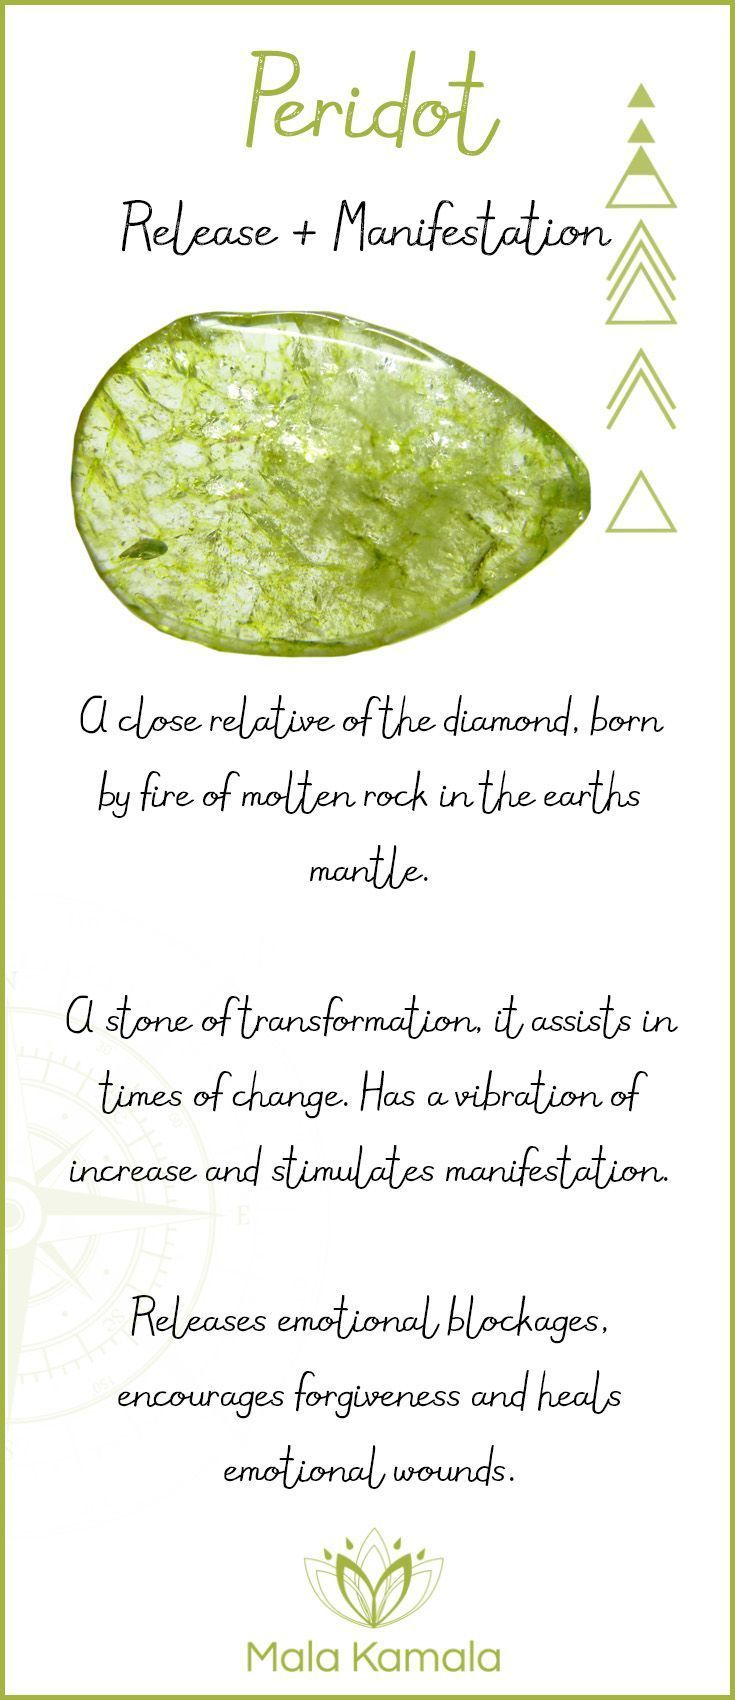 Pin To Save, Tap To Shop The Gem. What is the meaning and crystal and chakra healing properties of peridot? A stone for release, letting go and manifestation. Mala Kamala Mala Beads - Malas, Mala Beads, Mala Bracelets, Tiny Intentions, Baby Necklaces, Yog